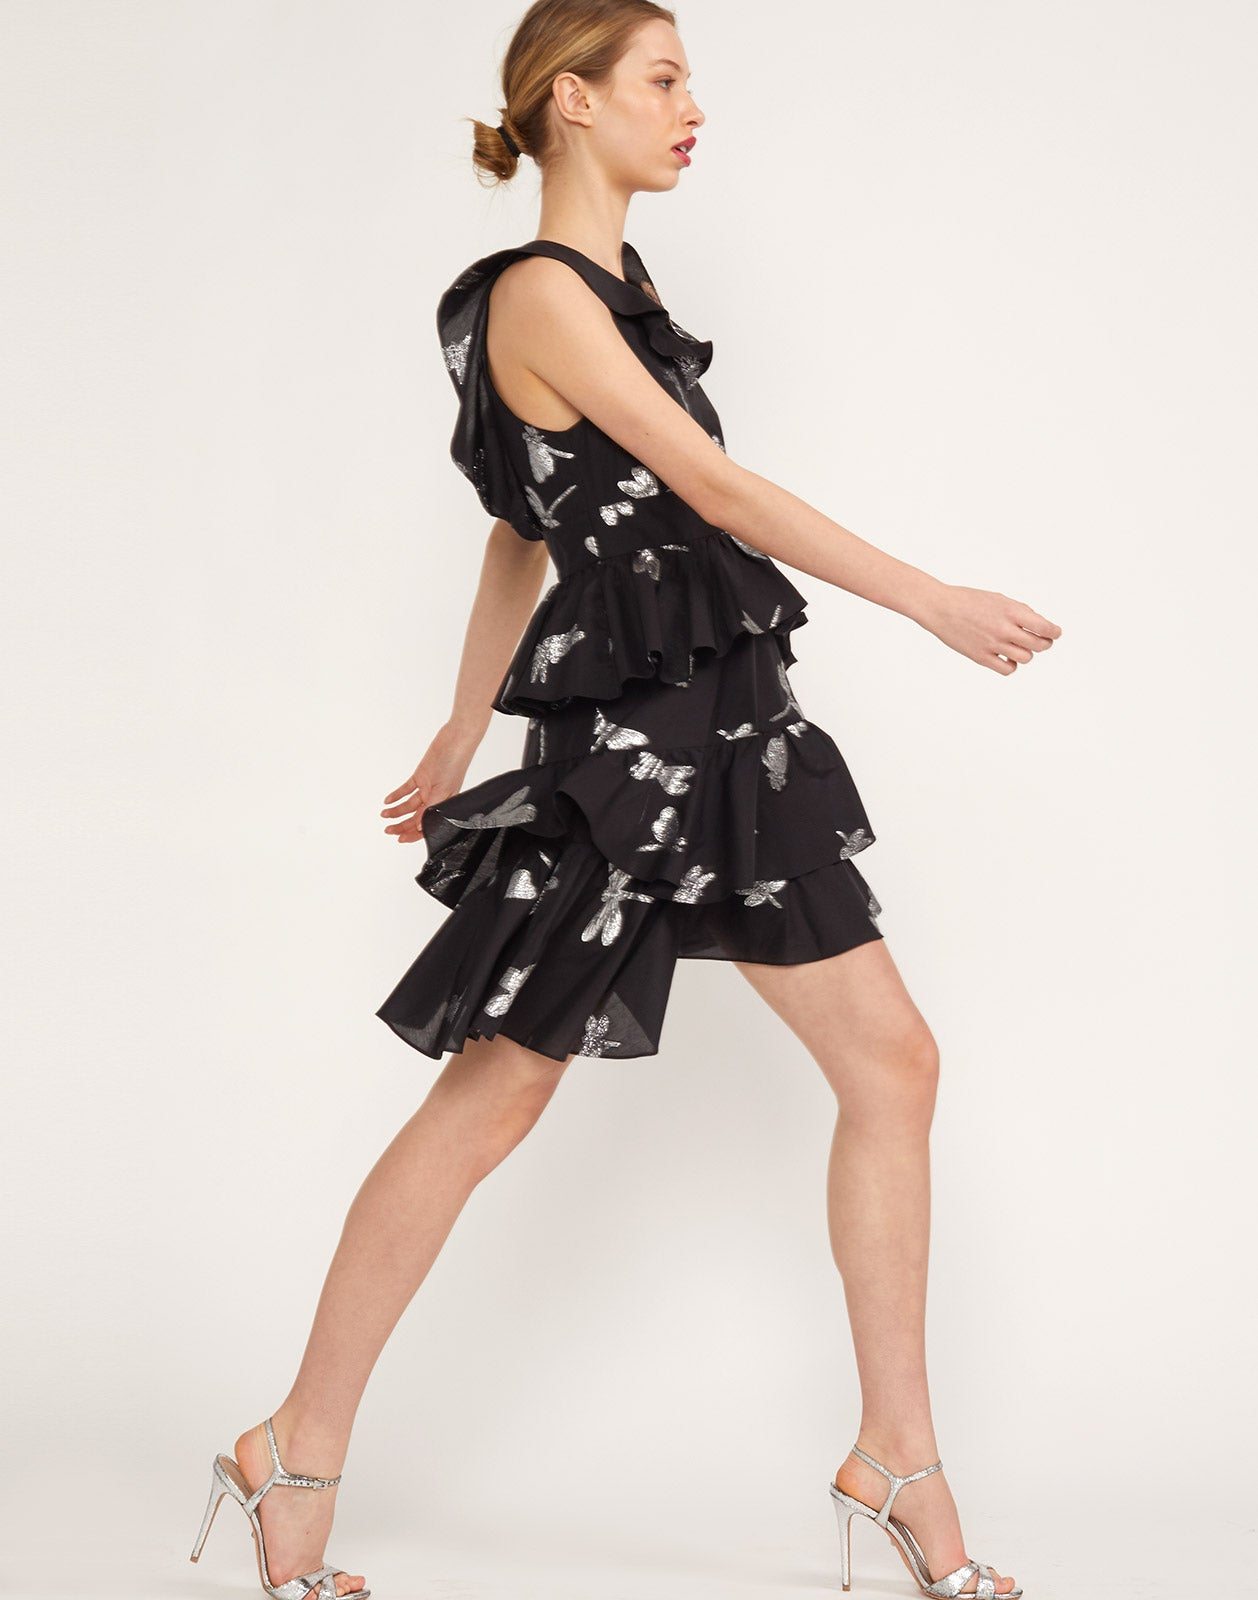 Side view of the Jetset Dragonfly Mini Dress